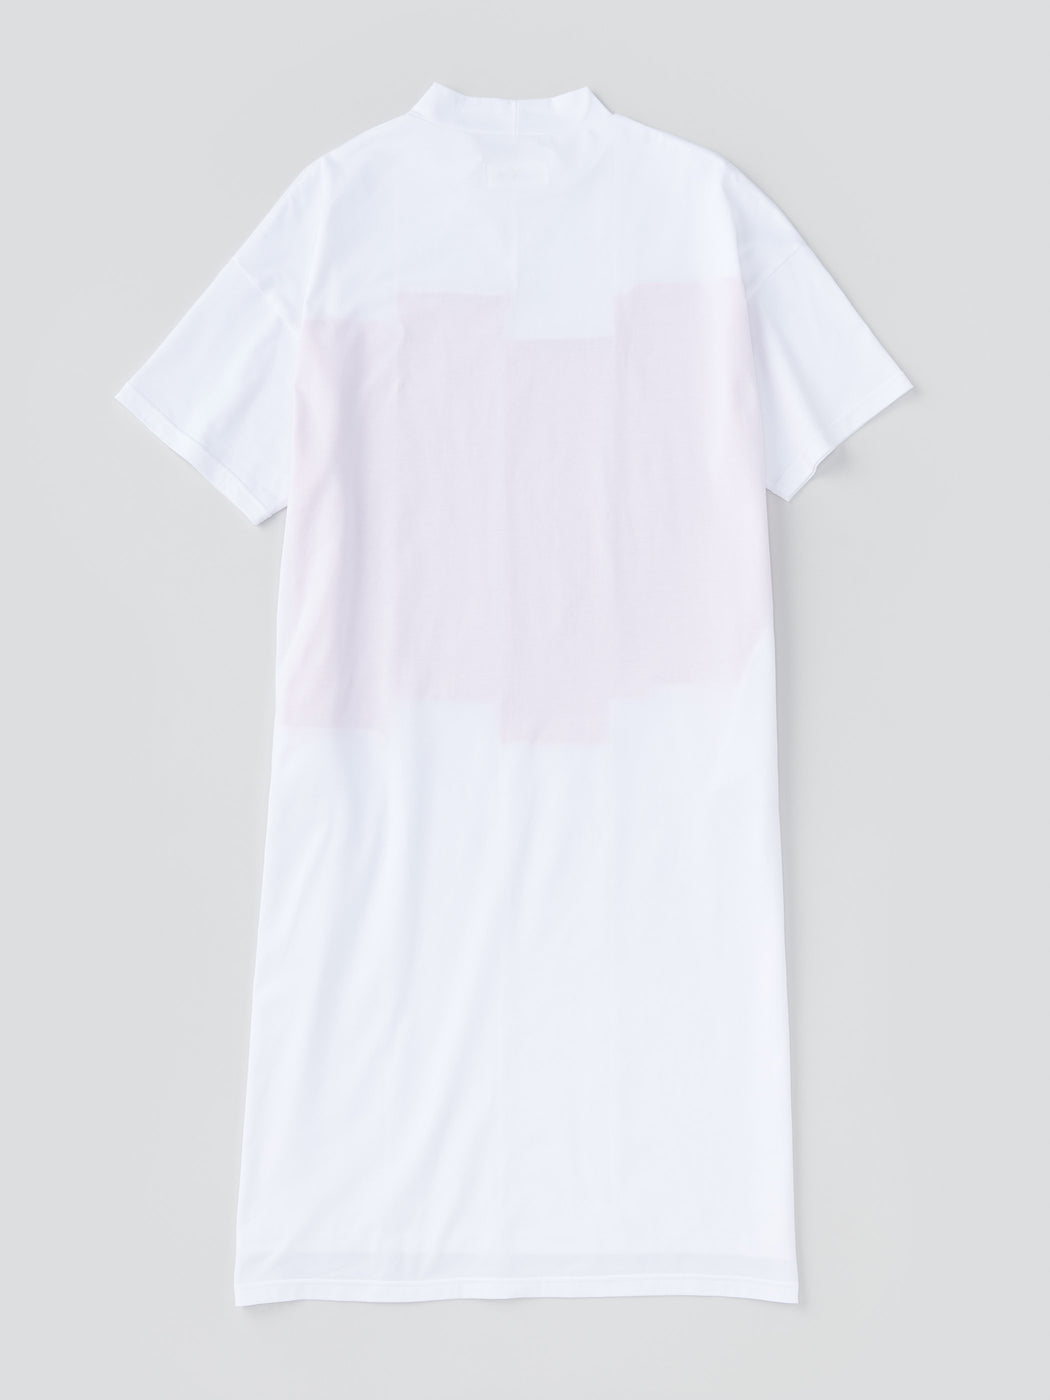 ALOYE Color Blocks Women's High Neck T-shirt Dress White-Orange Rectangles